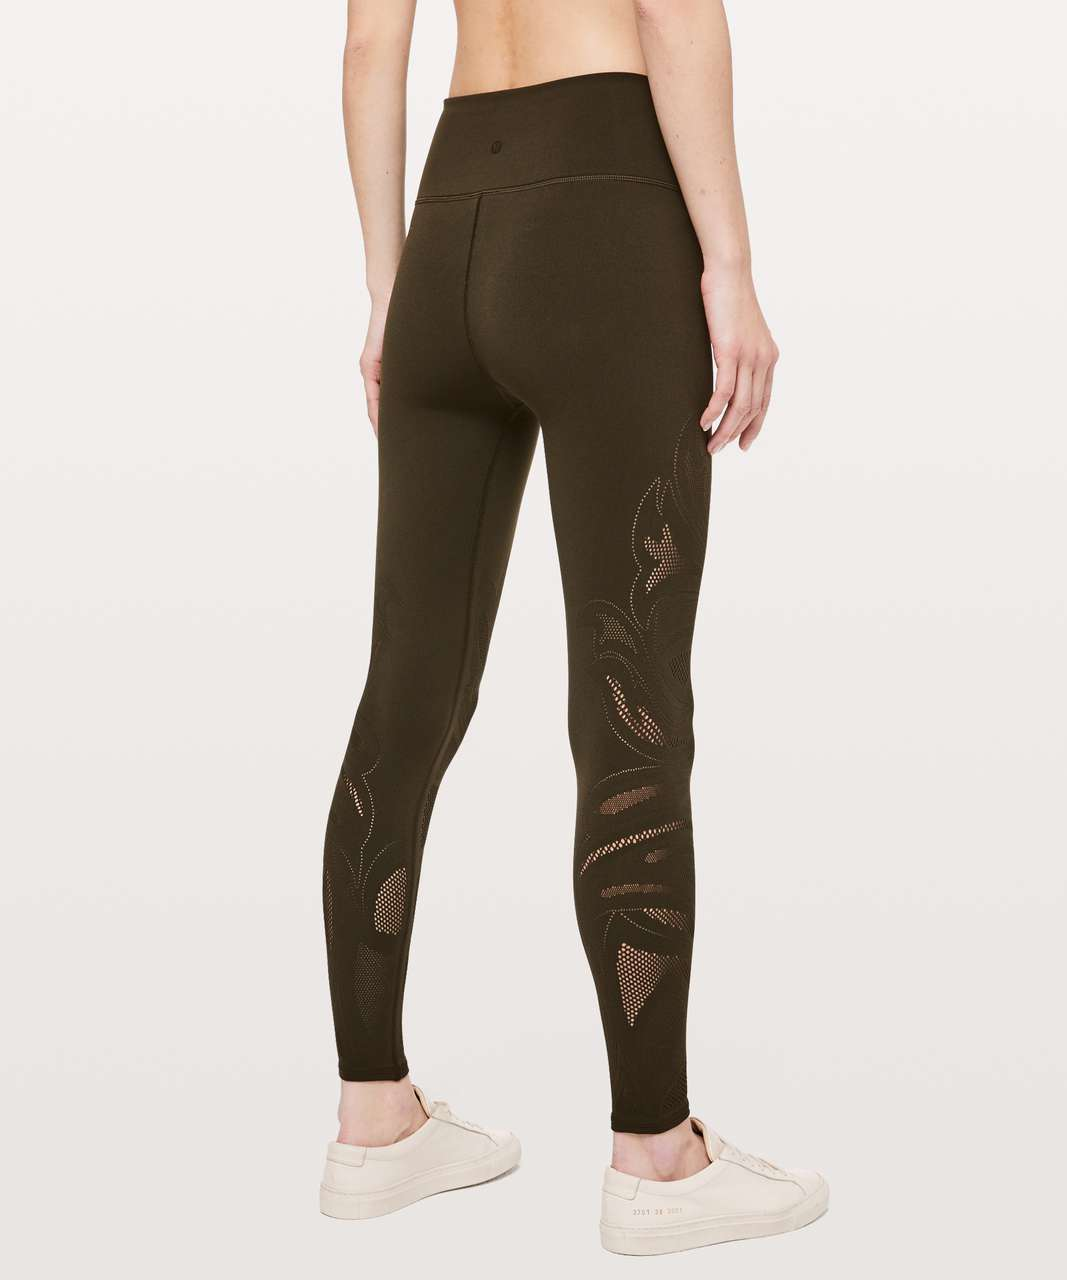 "Lululemon Reveal Tight *En Avante 26"" - Dark Olive"